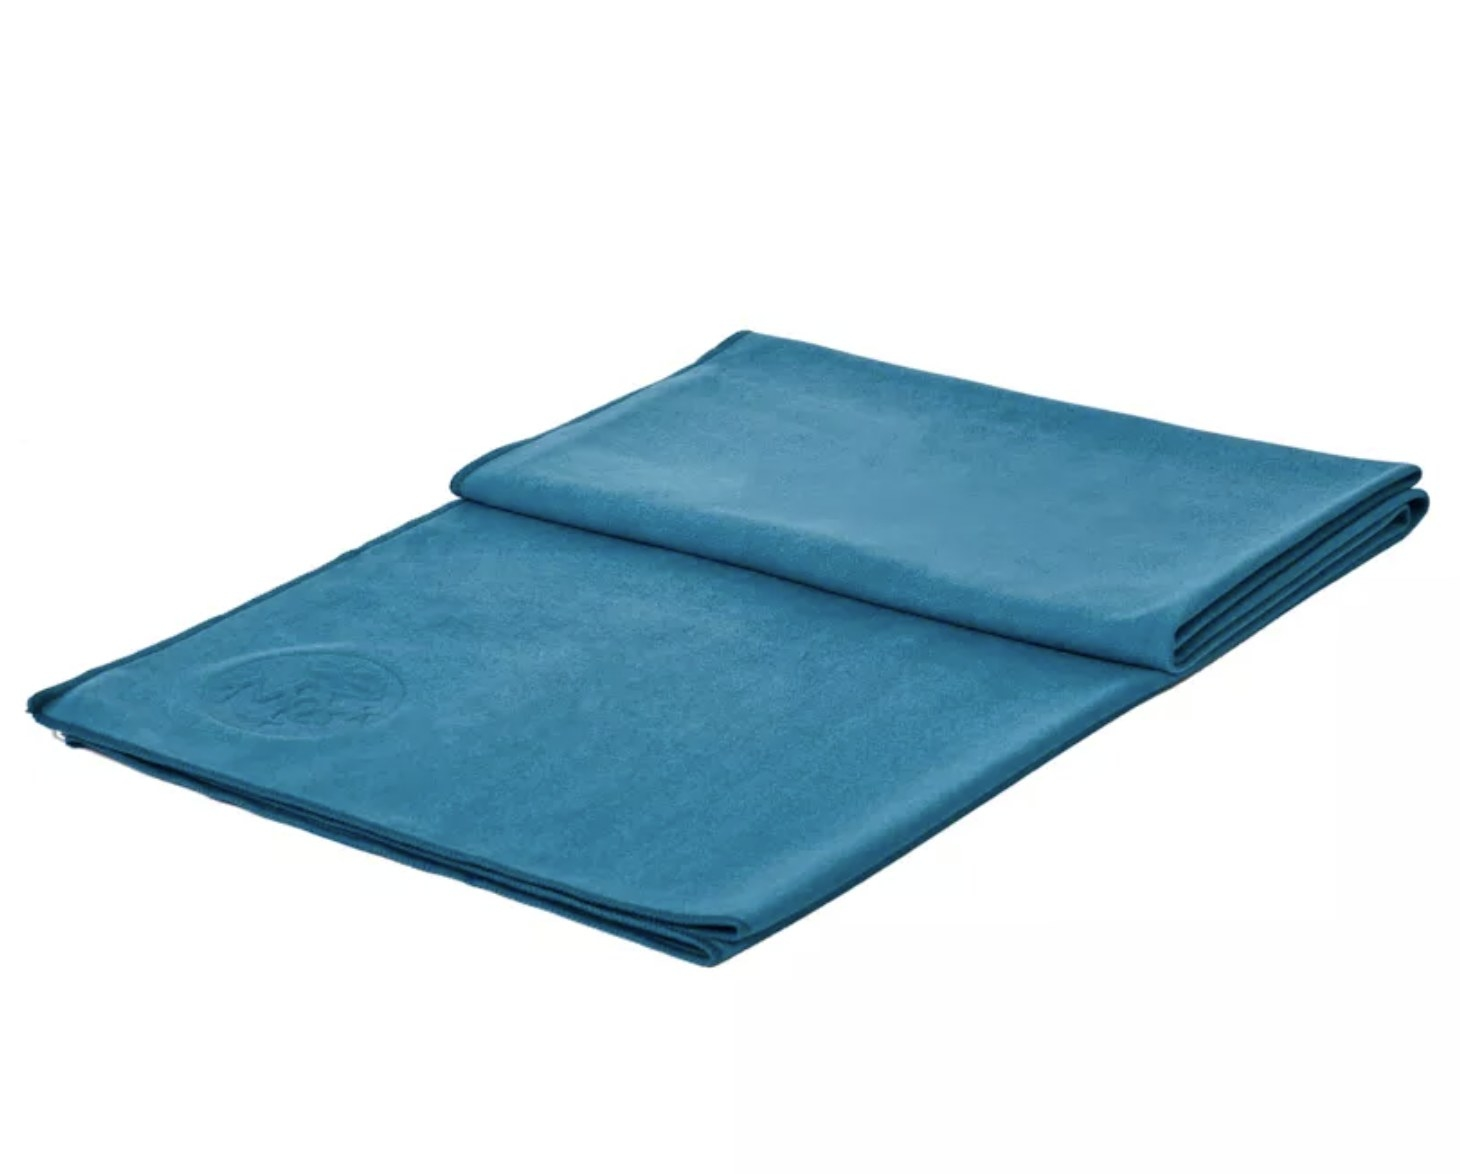 A blue yoga mat towel